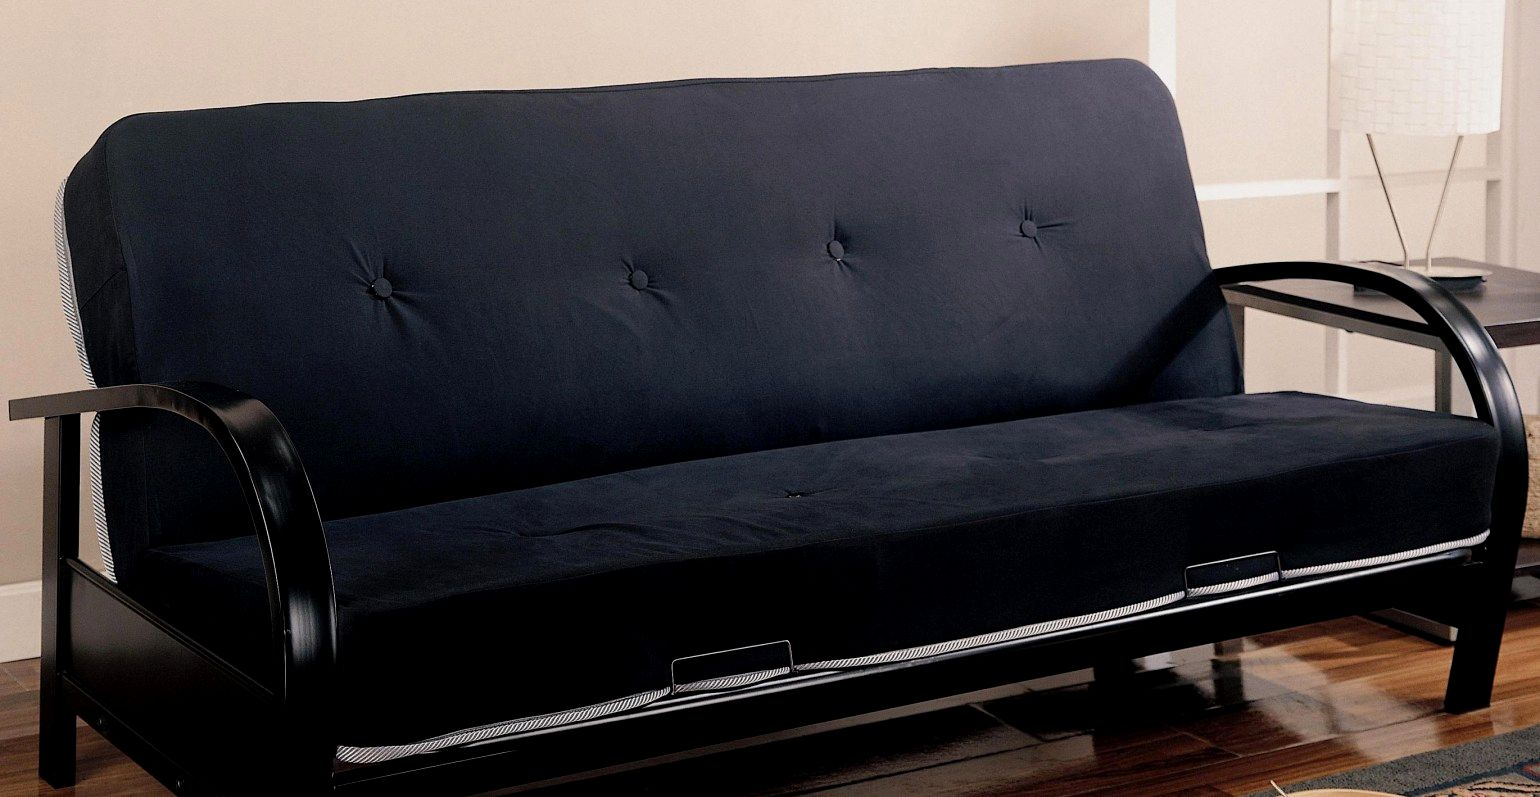 terrific futon sofa bed walmart design-Superb Futon sofa Bed Walmart Wallpaper